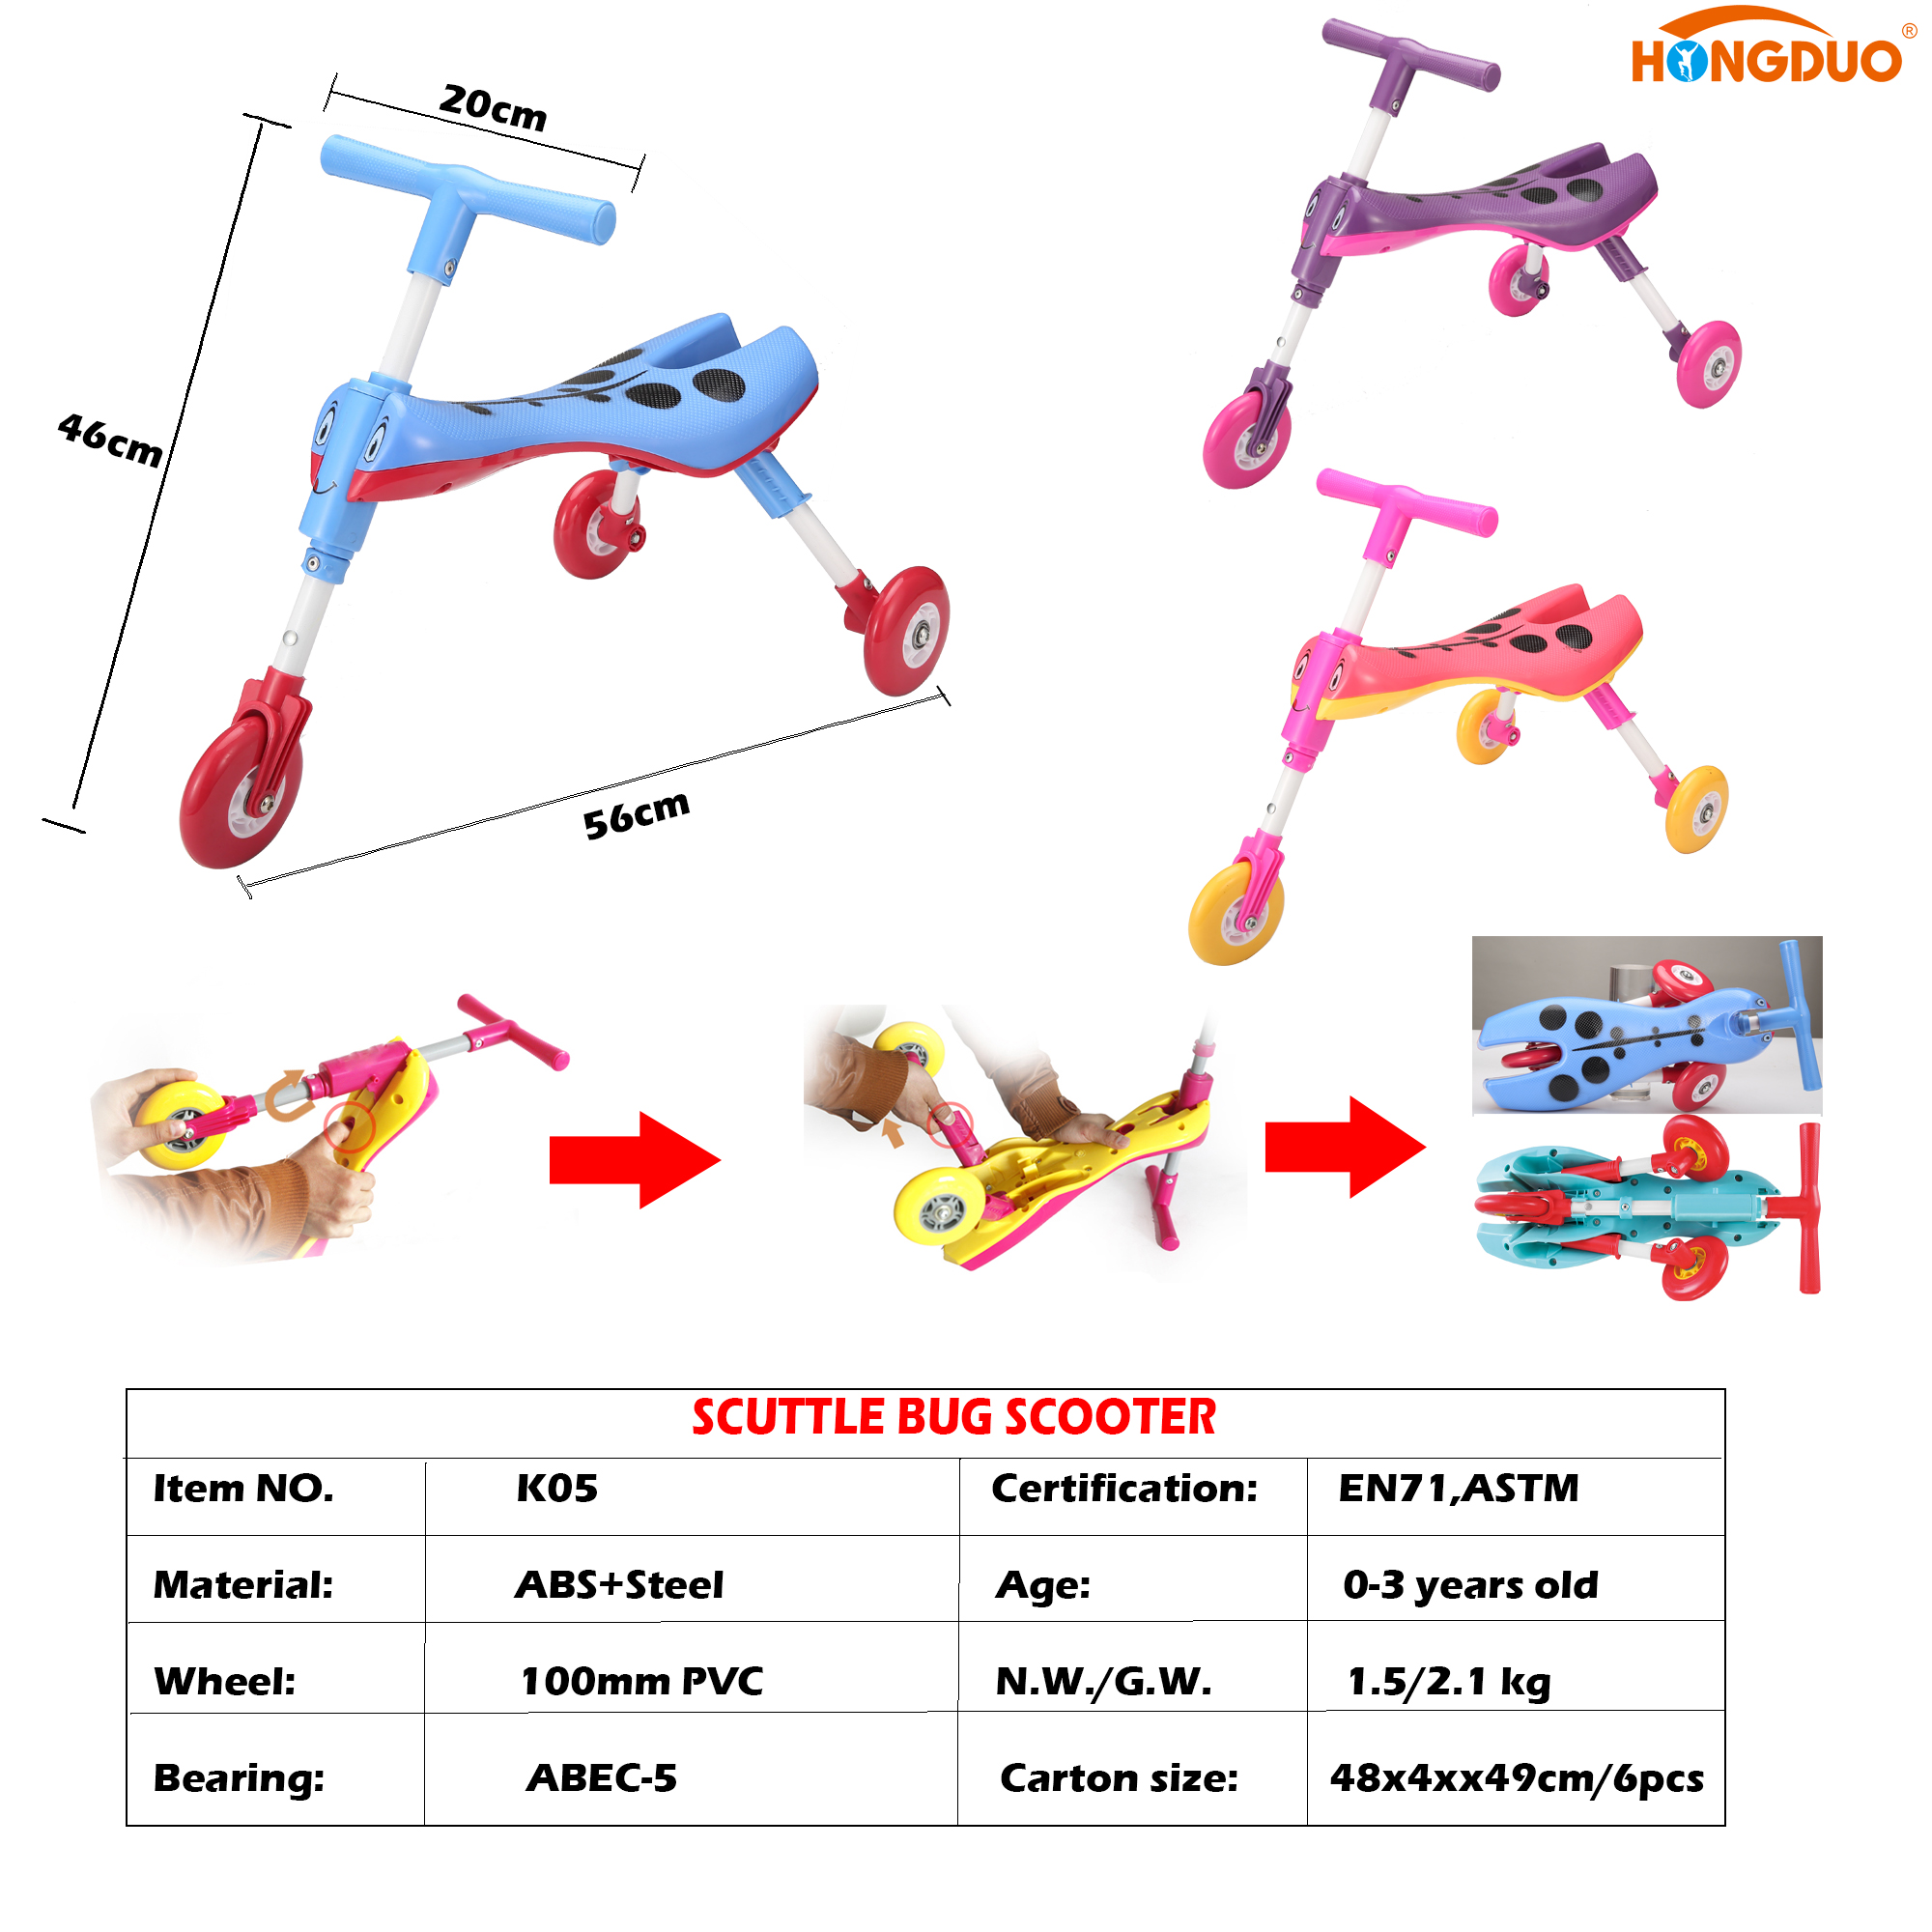 Scuttle bug scooter children tricycle toy Baby slide walking Folding trike